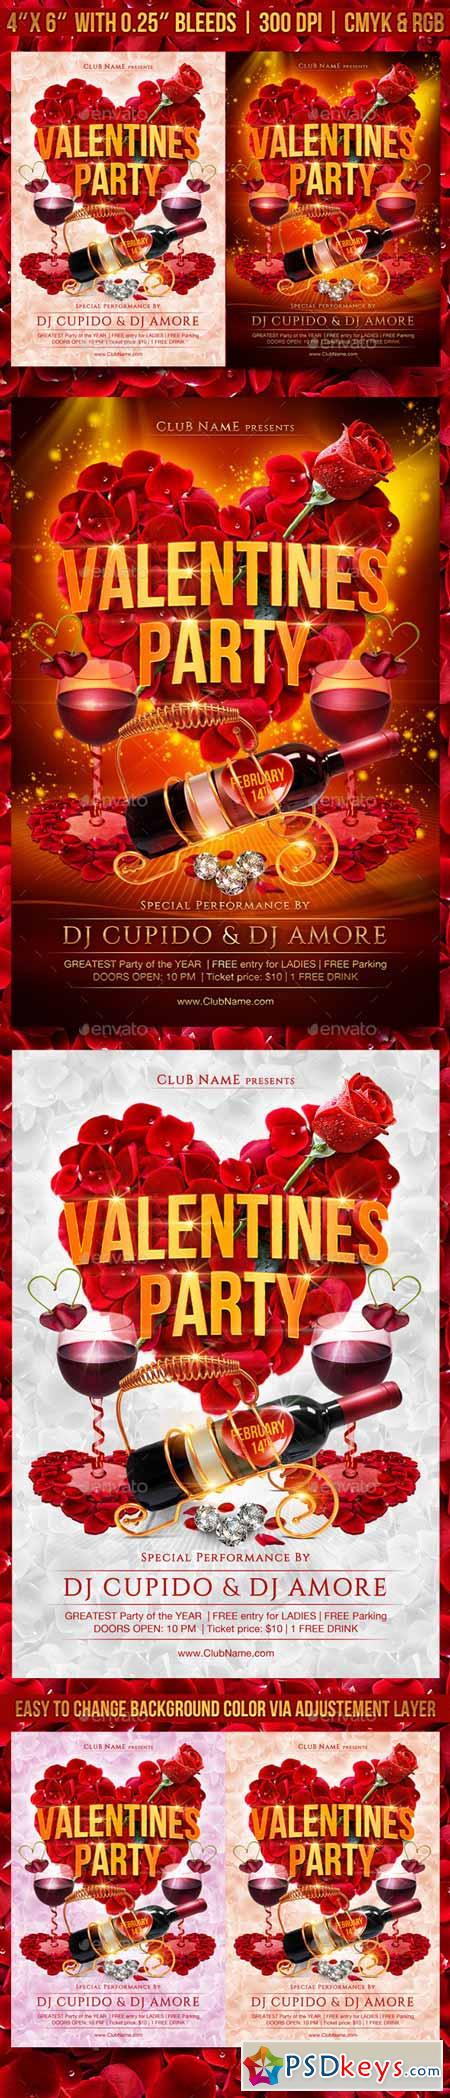 Valentines Day Party Flyer 10037795